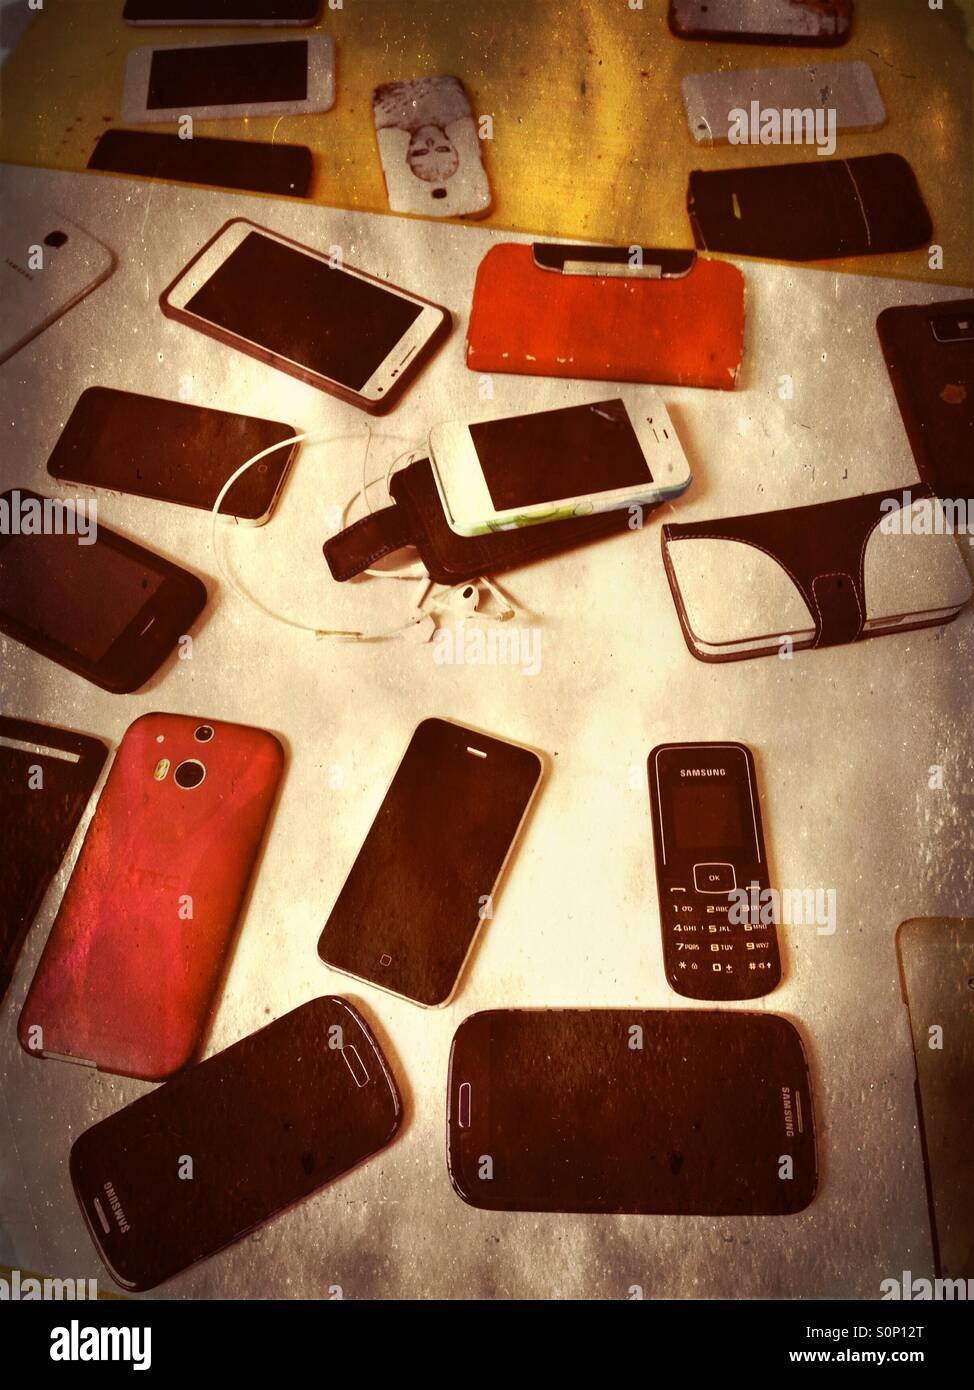 Smartphones and cellphones on a table during an exam to prevent cheating - Stock Image